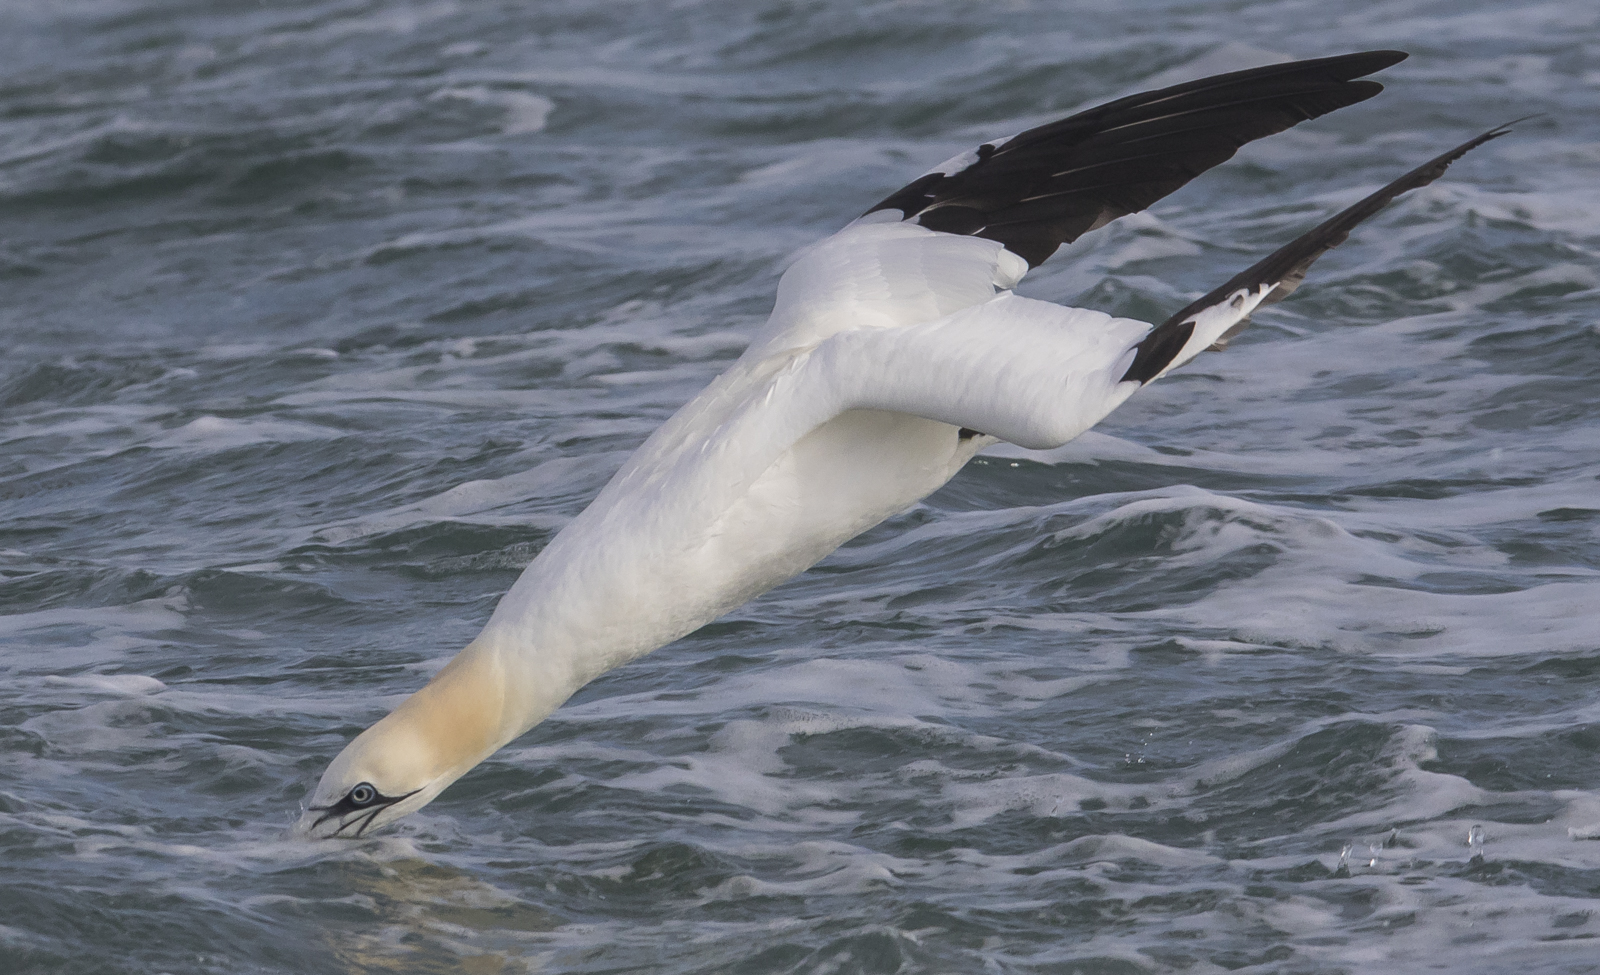 Northern Gannet  just at impact with ocean